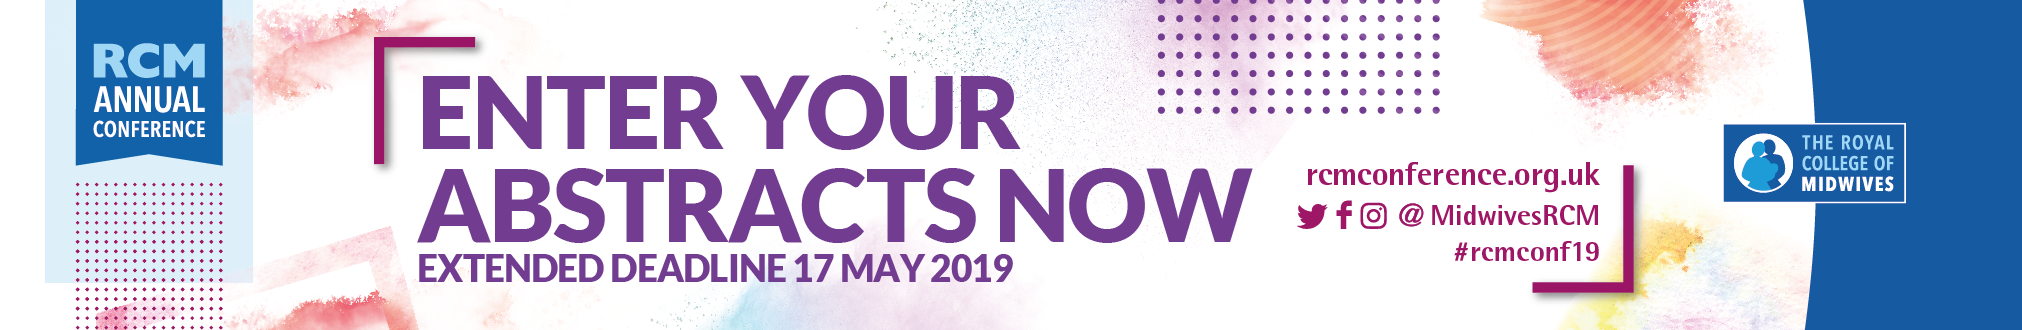 RCM Annual Conference 2019 - Abstracts entry process